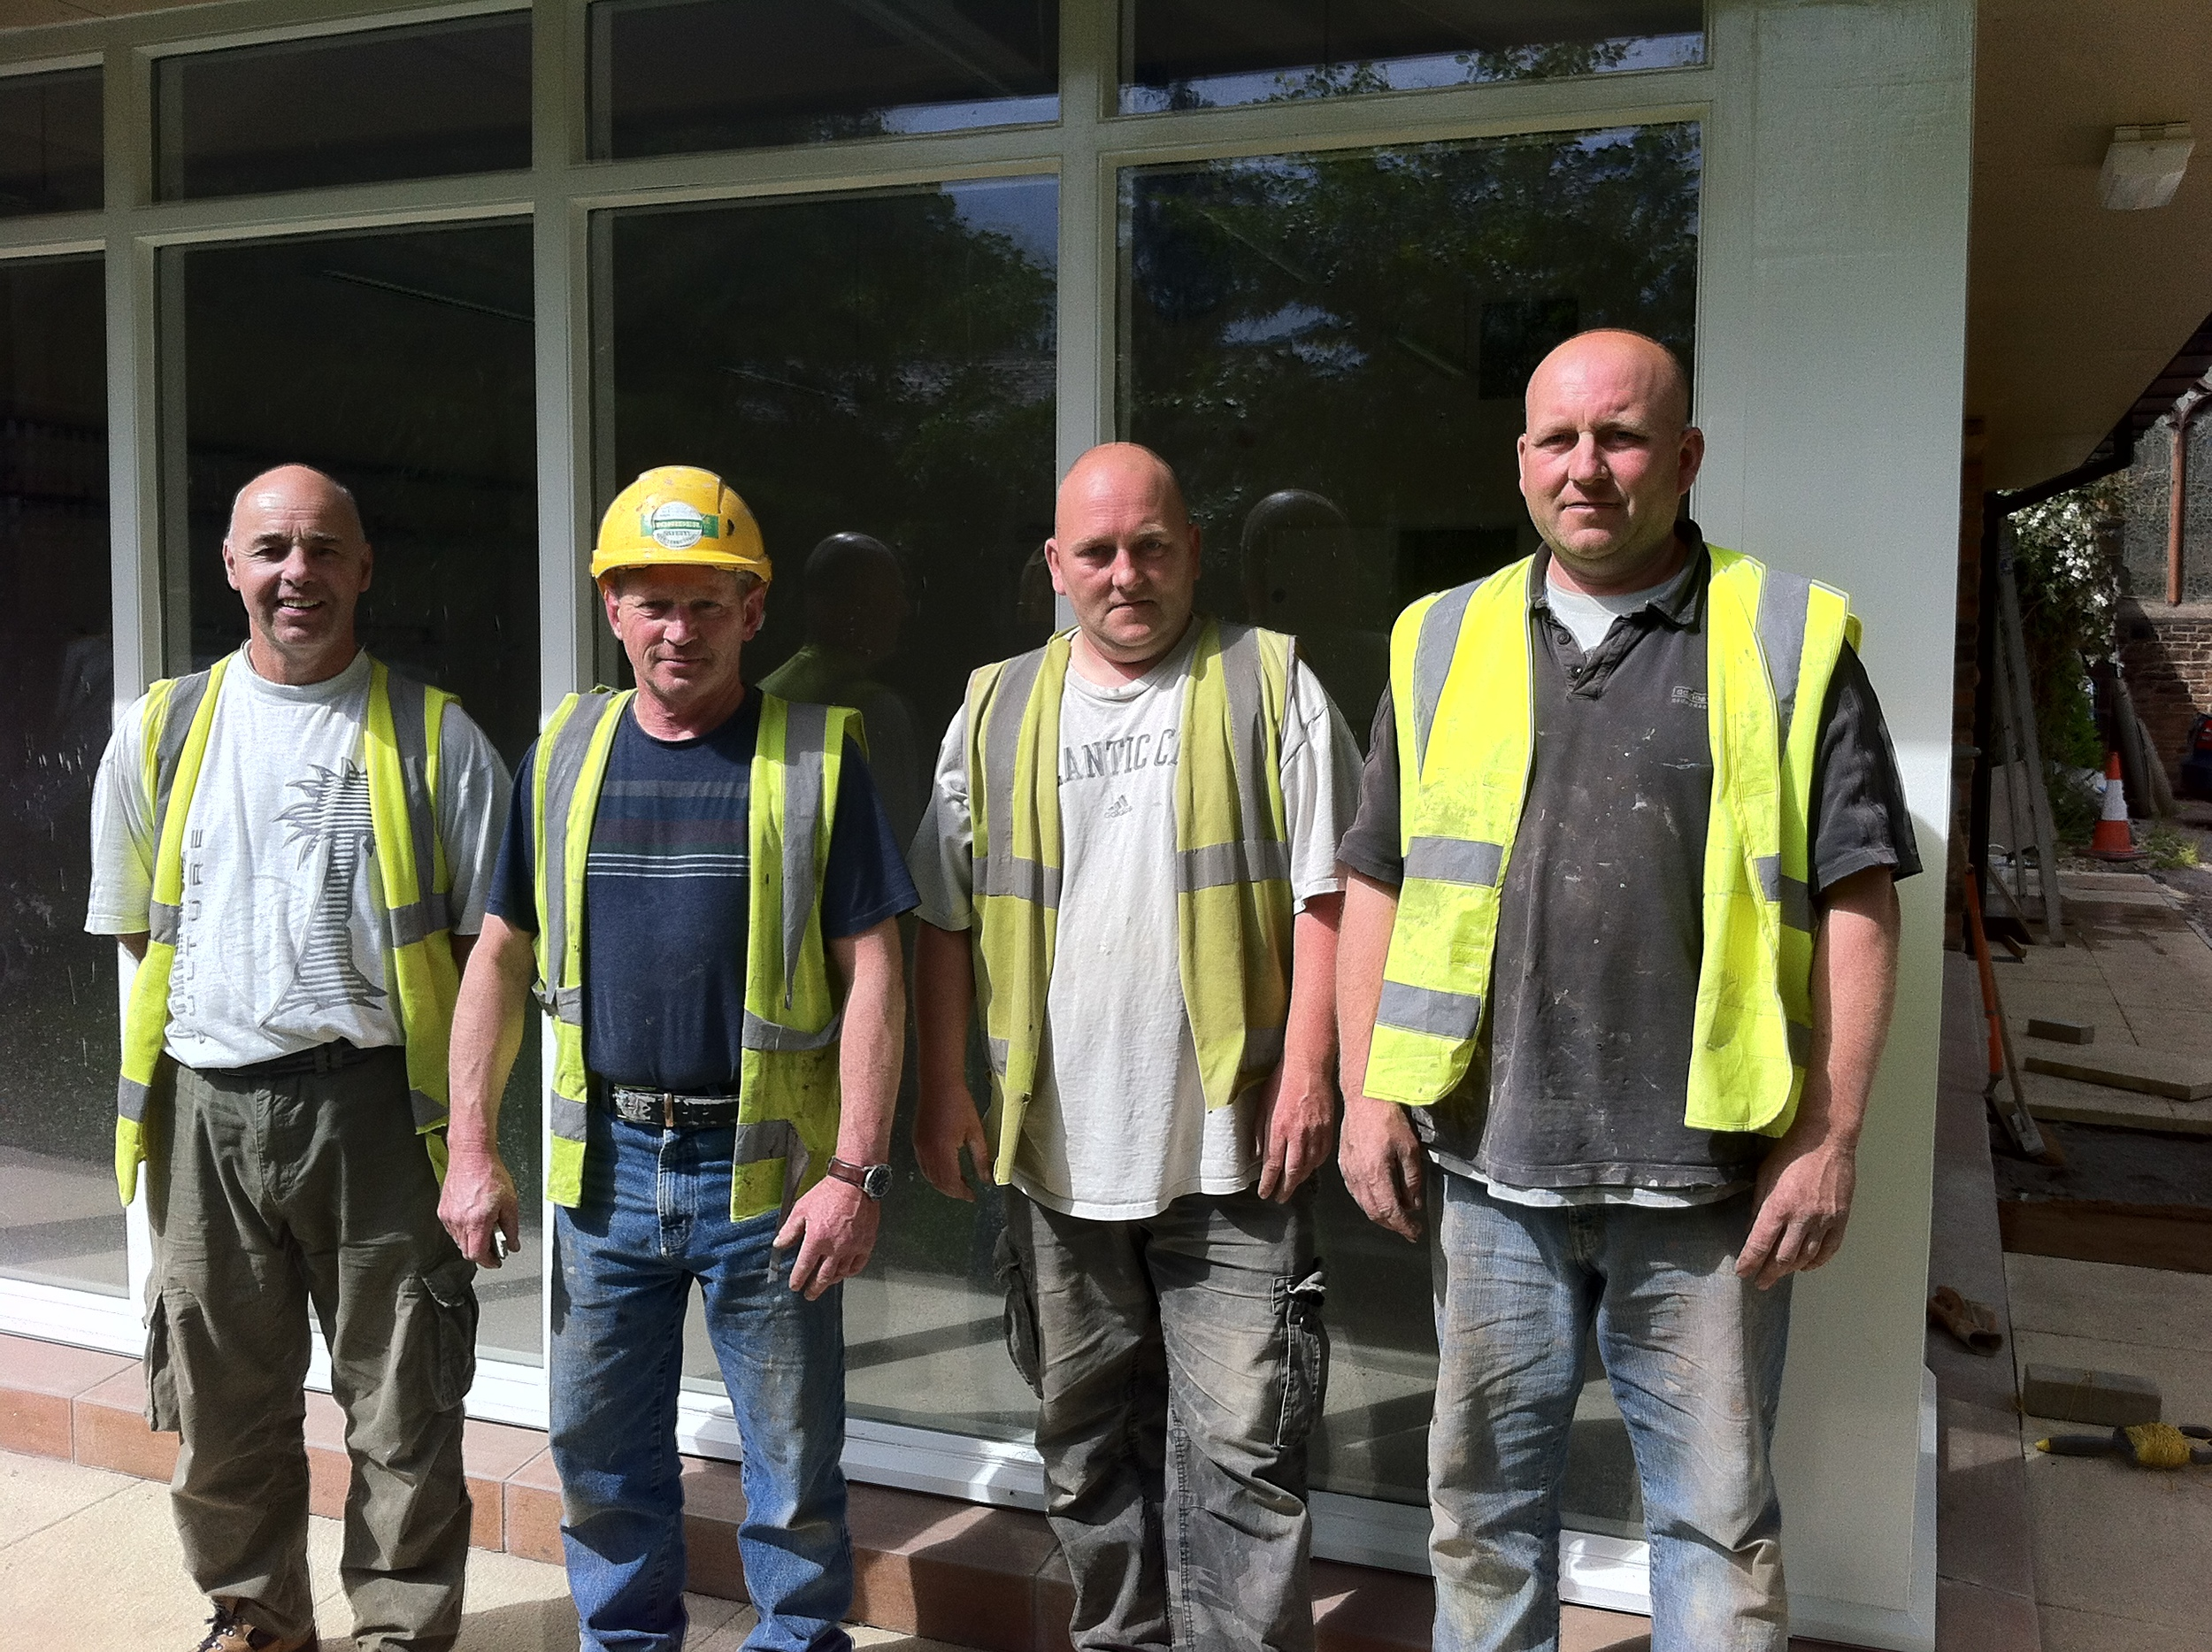 The work gang - our four core workers from Border Construction with us on the site for six months.